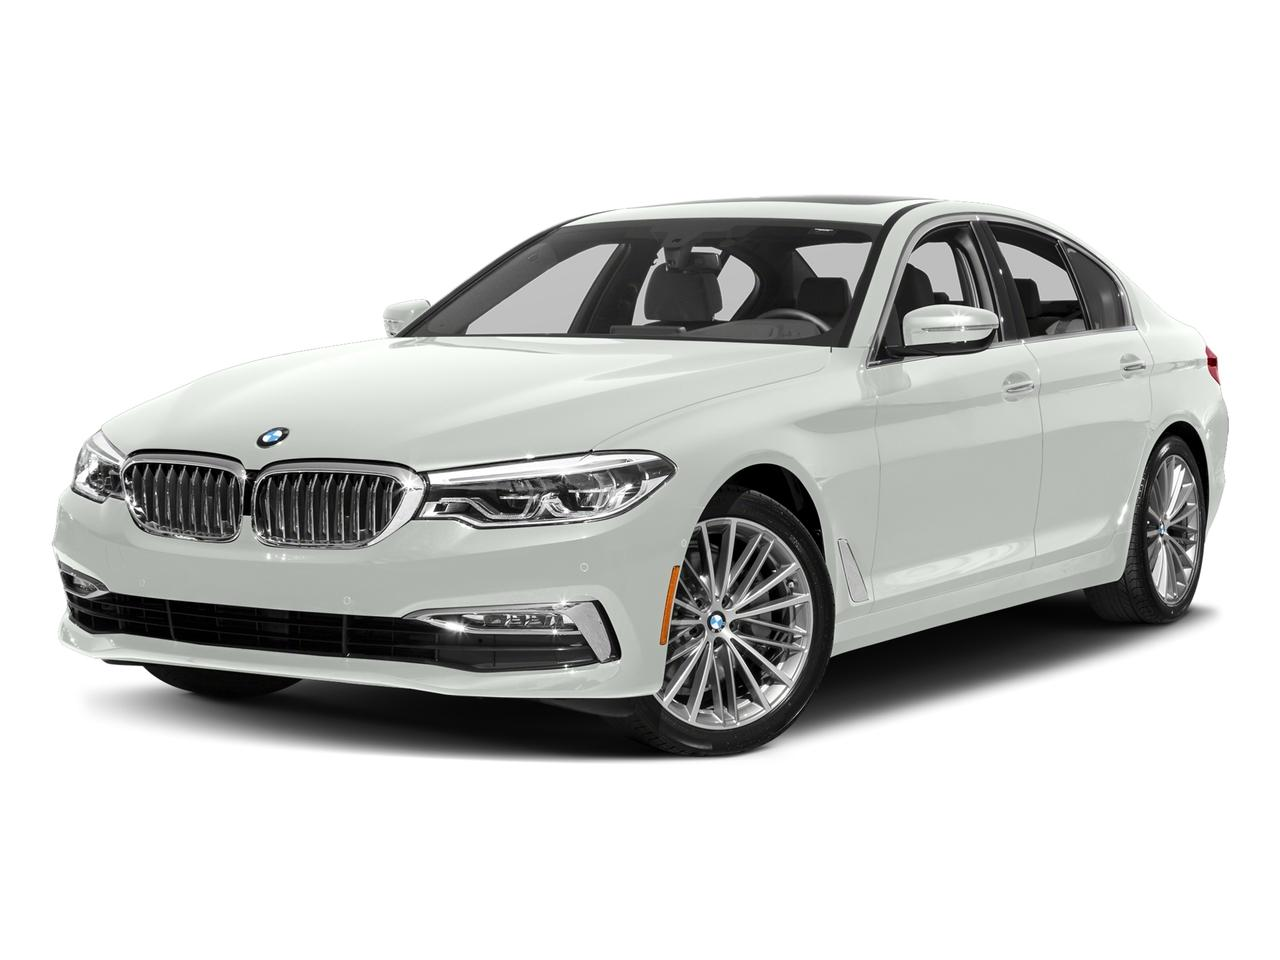 2017 BMW 540i Vehicle Photo in Pleasanton, CA 94588